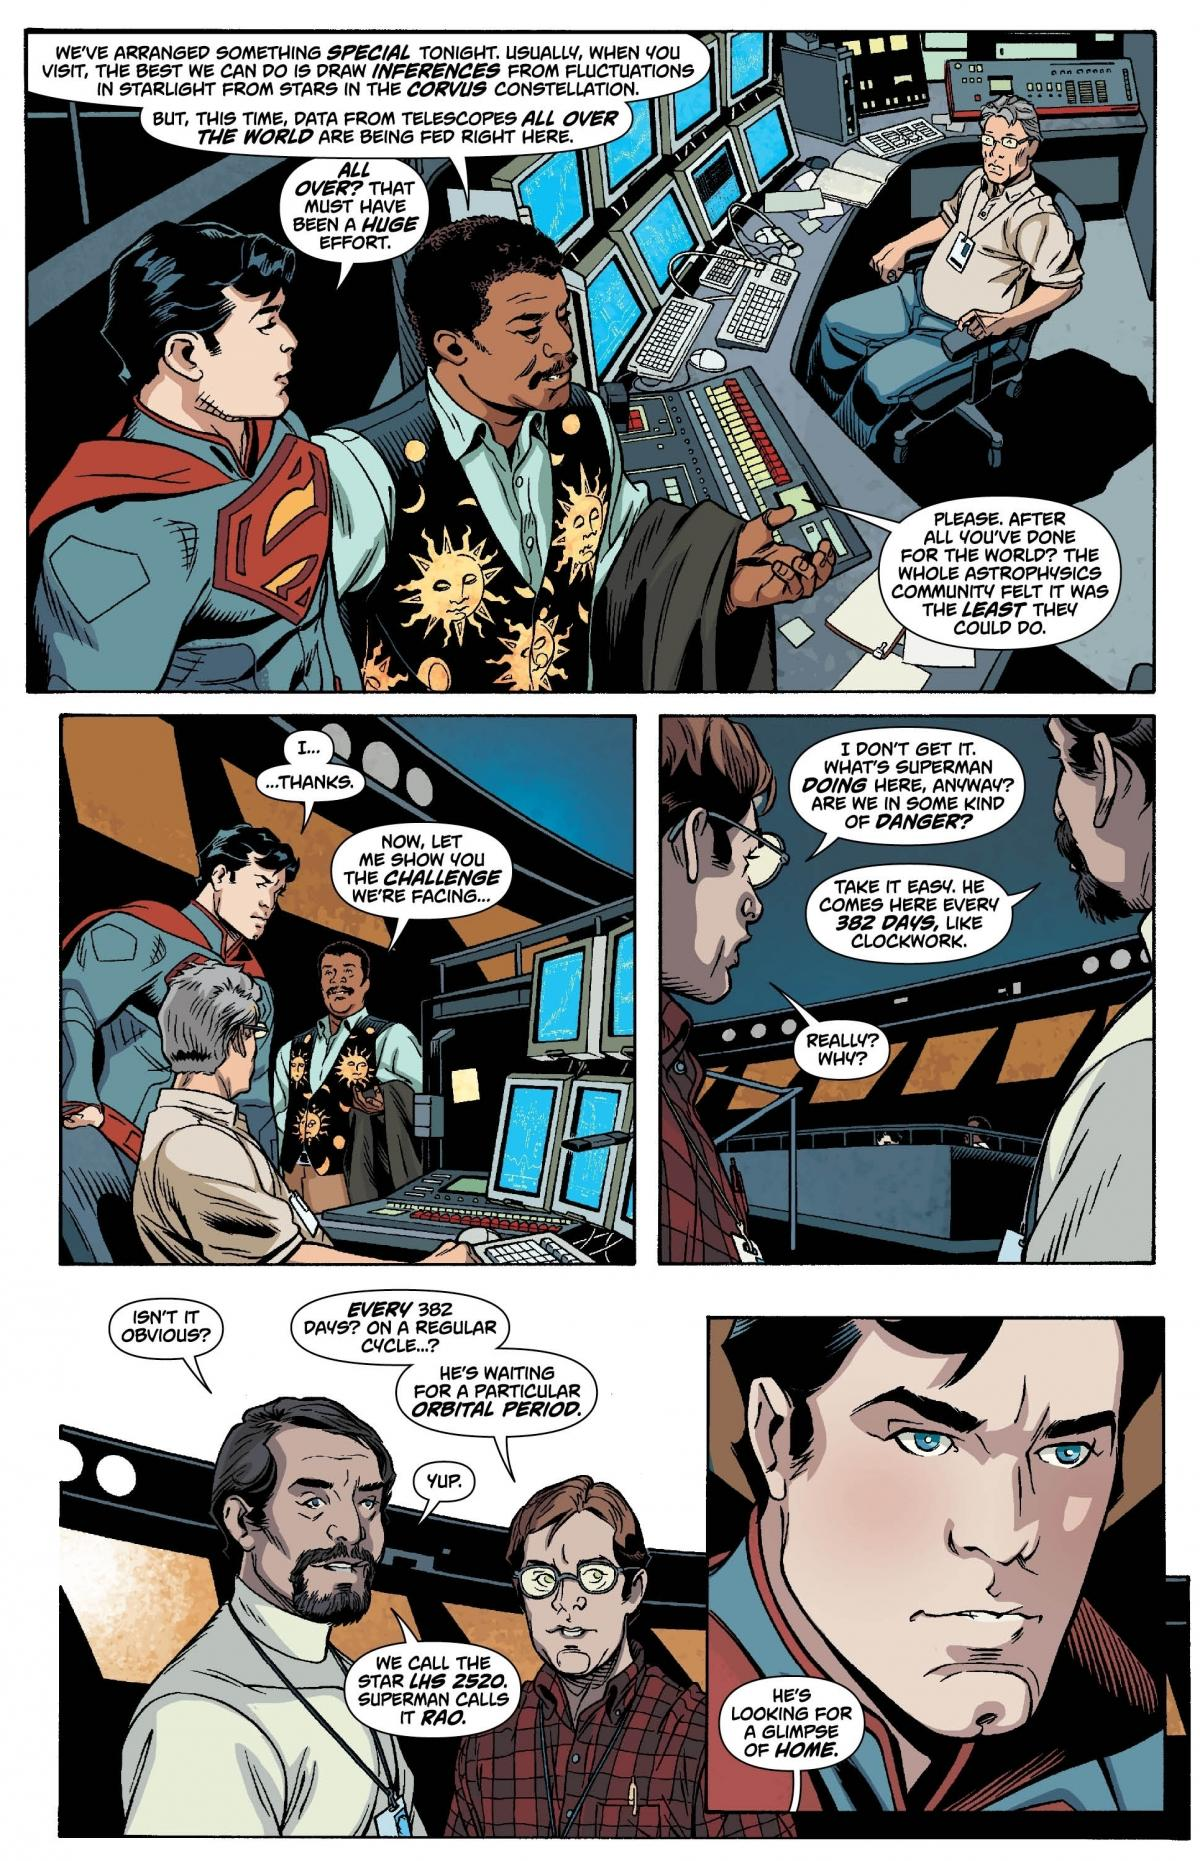 Superman is overwhelmed by the generosity of the scientists at the Hayden Planetarium.